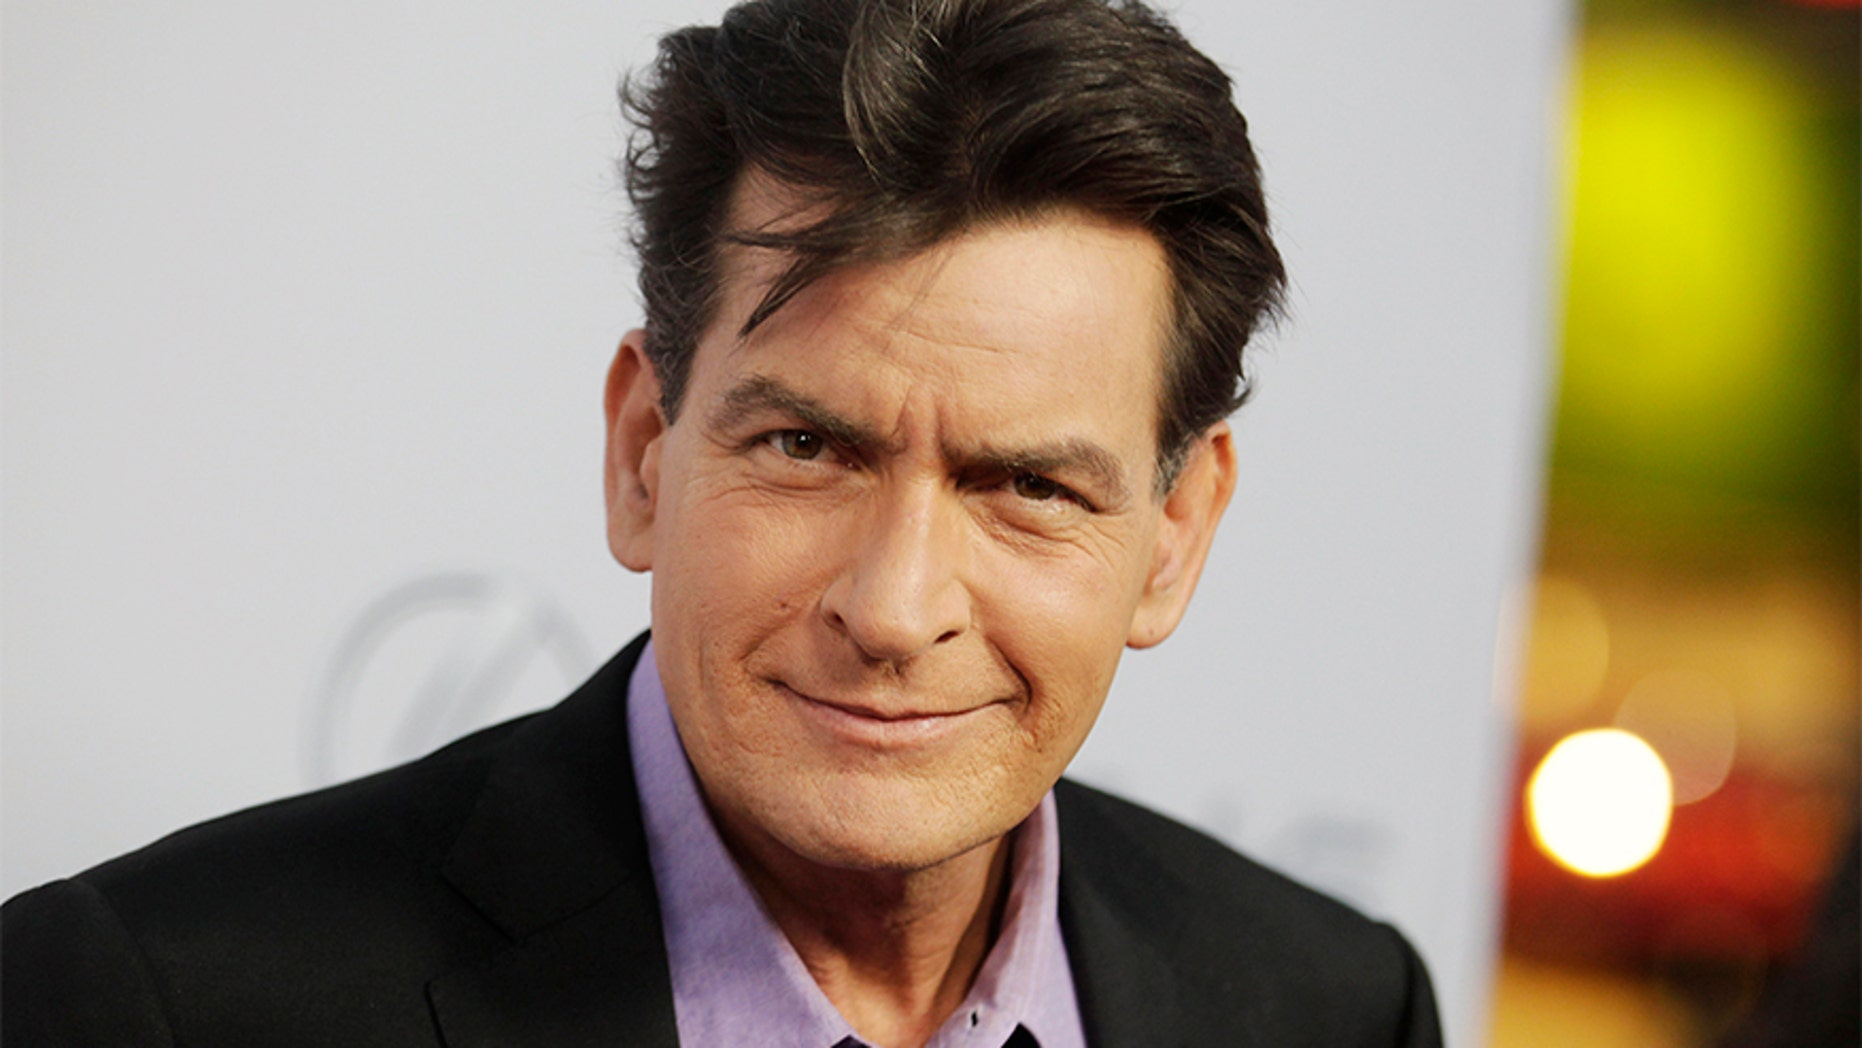 Charlie Sheen was hidden in a drug clinic 01.02.2011 6